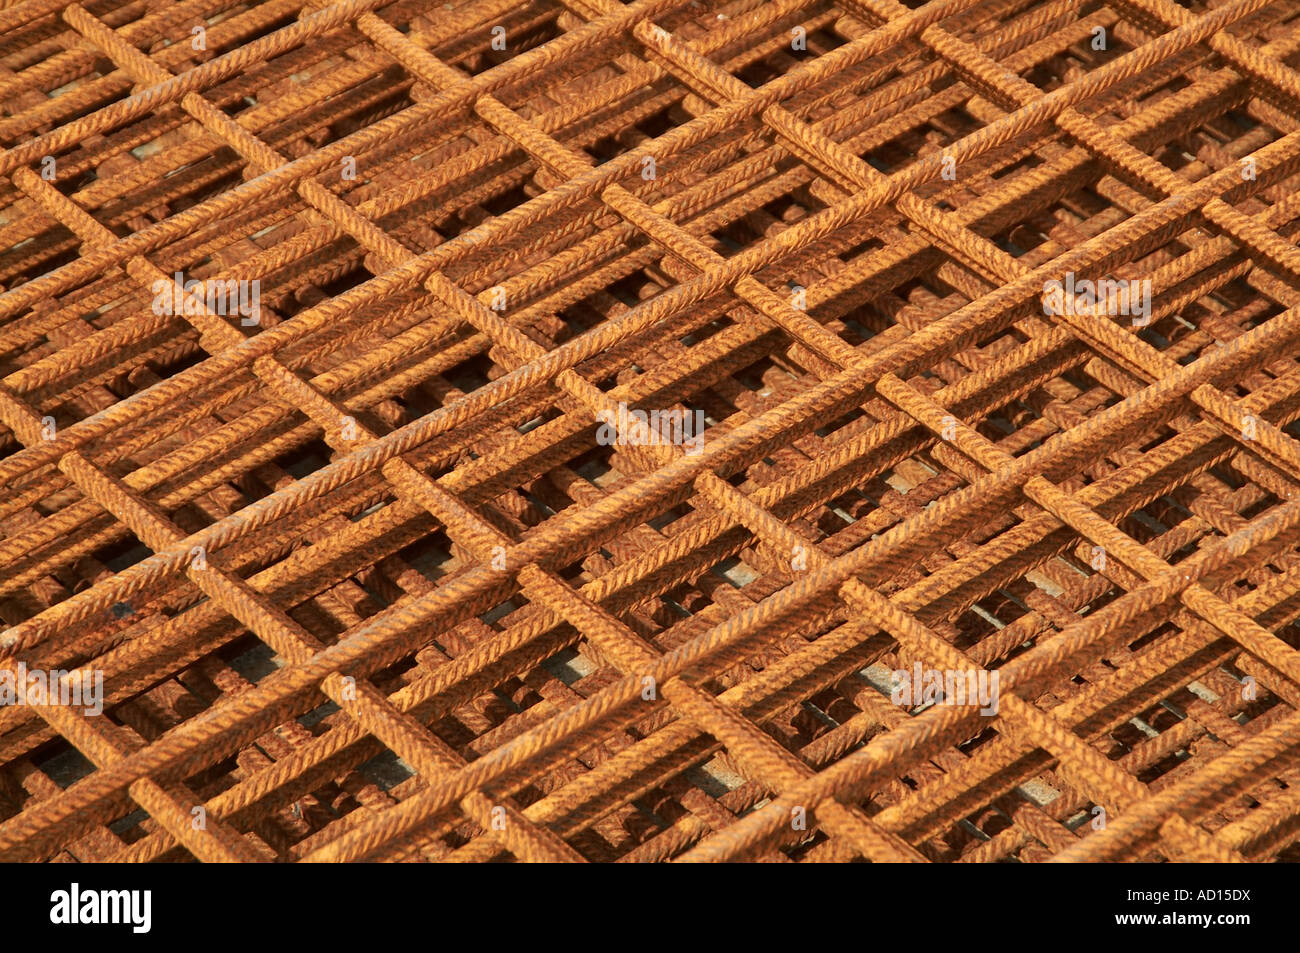 Reinforced, concrete, steel, rebar, construction, materials, building, slab, floor, - Stock Image